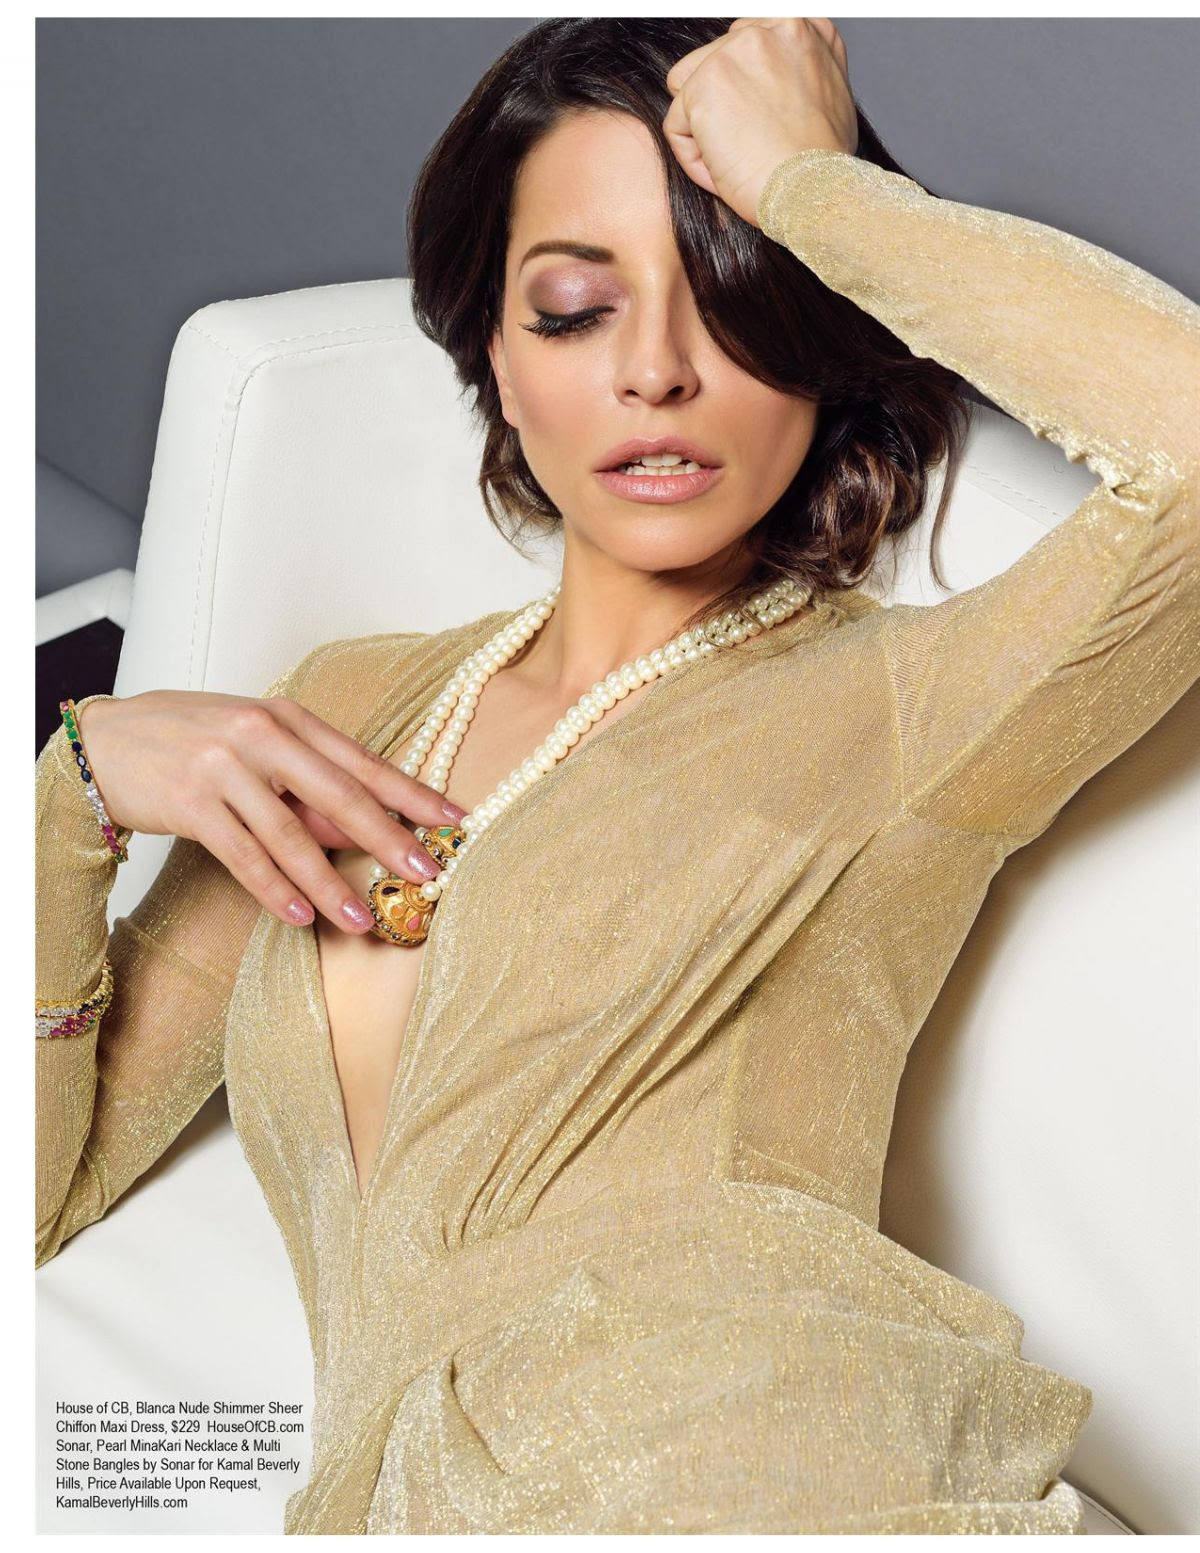 EMMANUELLE VAUGIER in Regard Magazine, Issue #31 April 2015